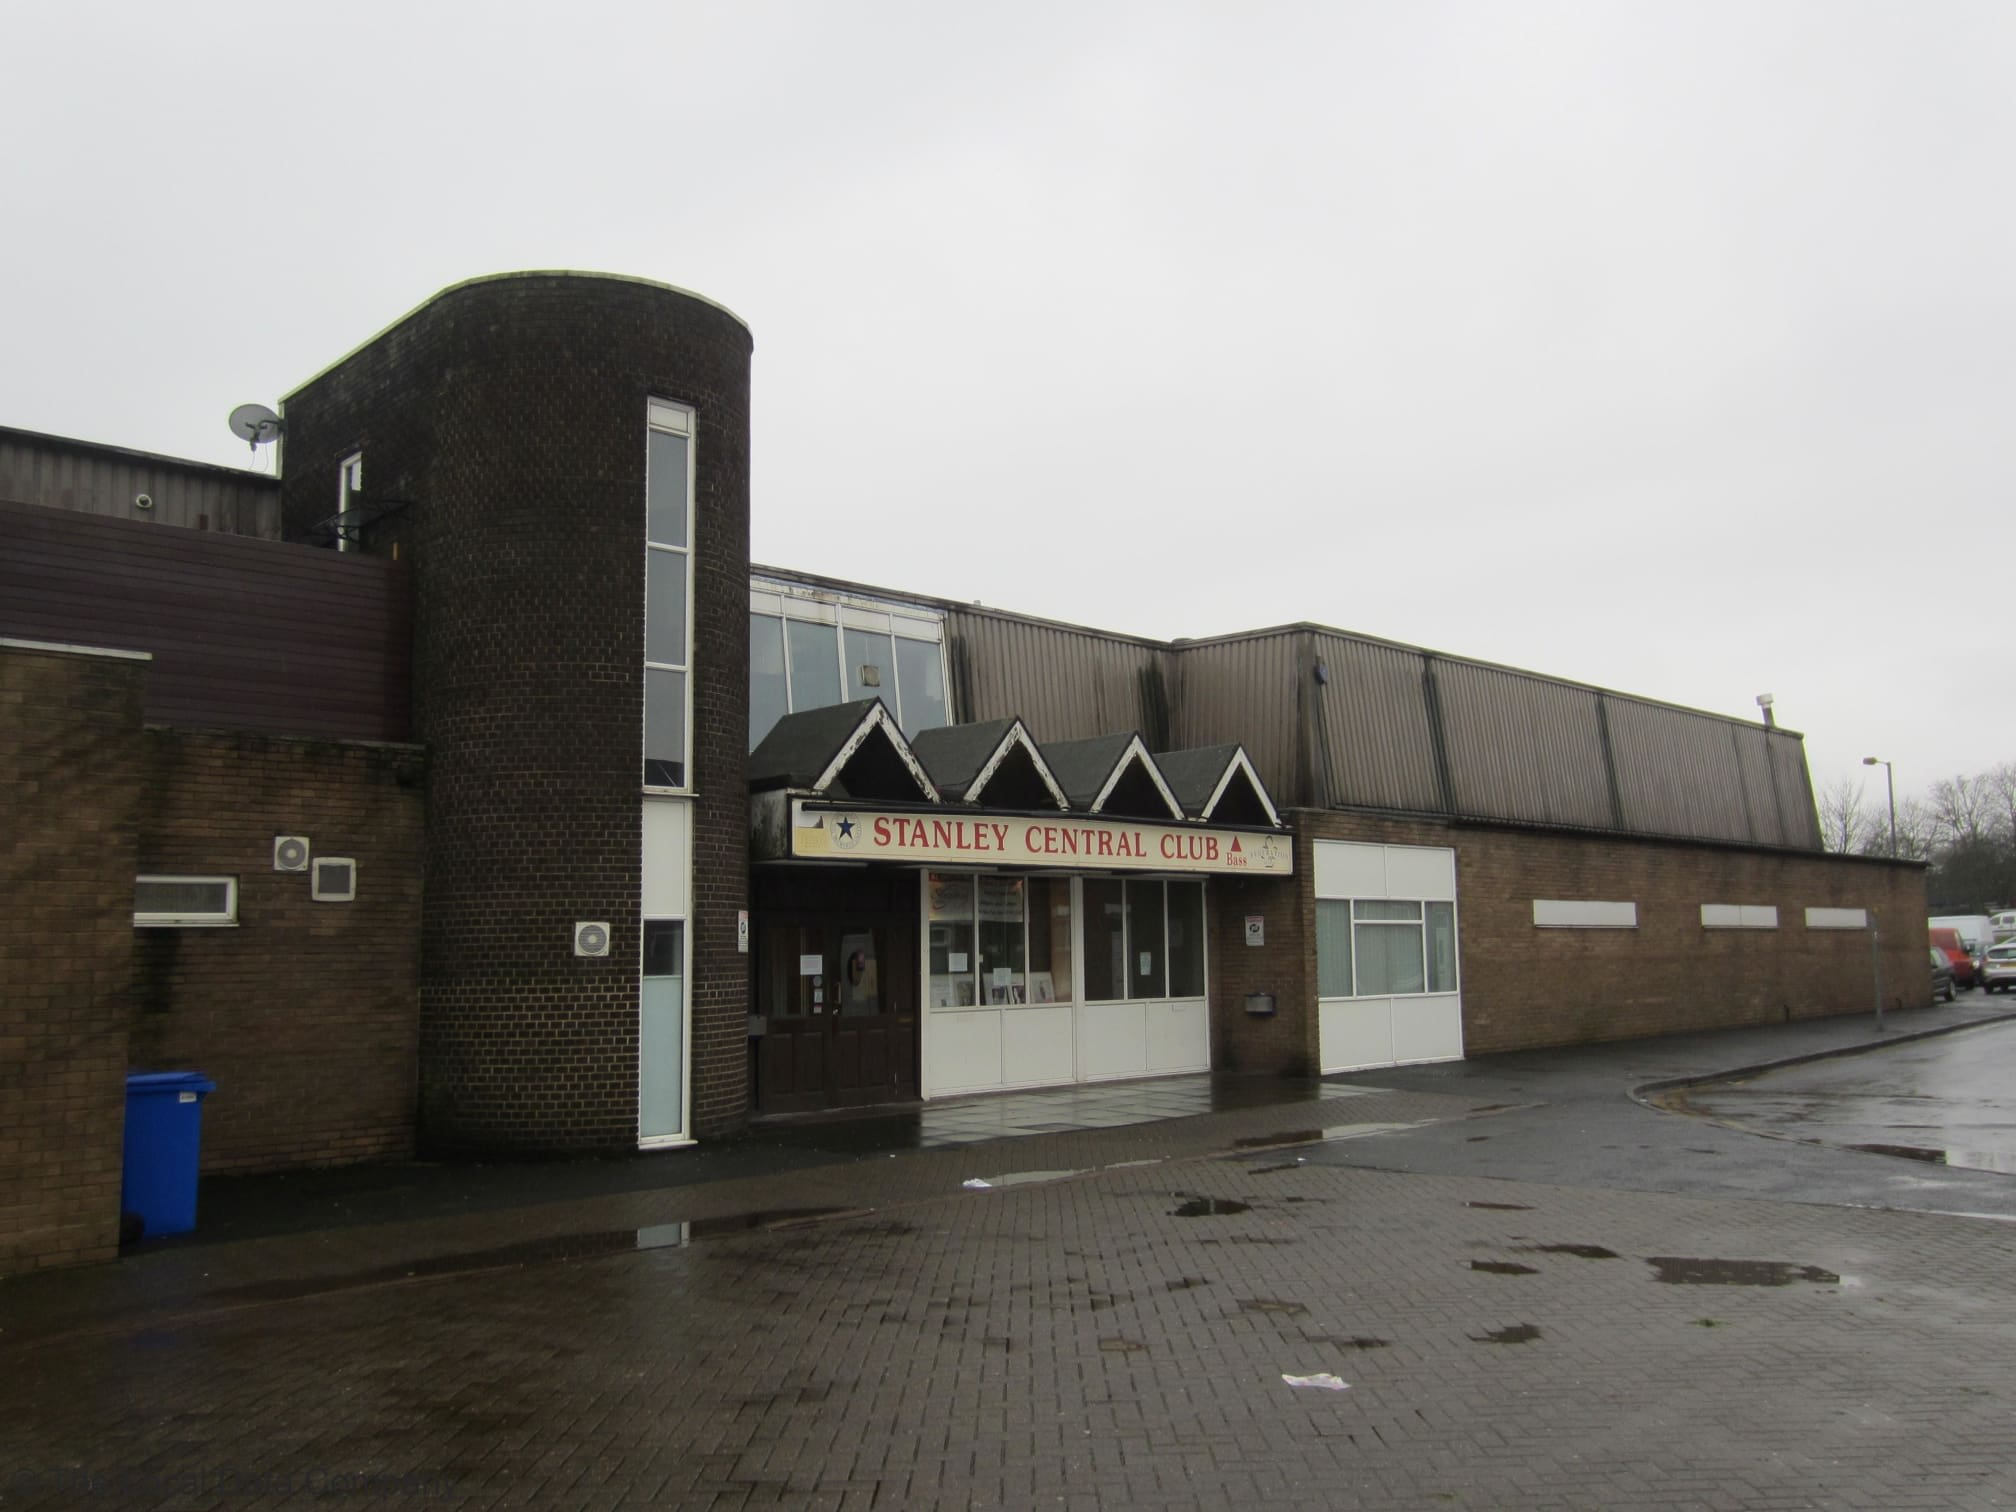 Stanley Central Working Mens Club & Institute   Clifford Road, Stanley DH9 0AD   +44 1207 232882